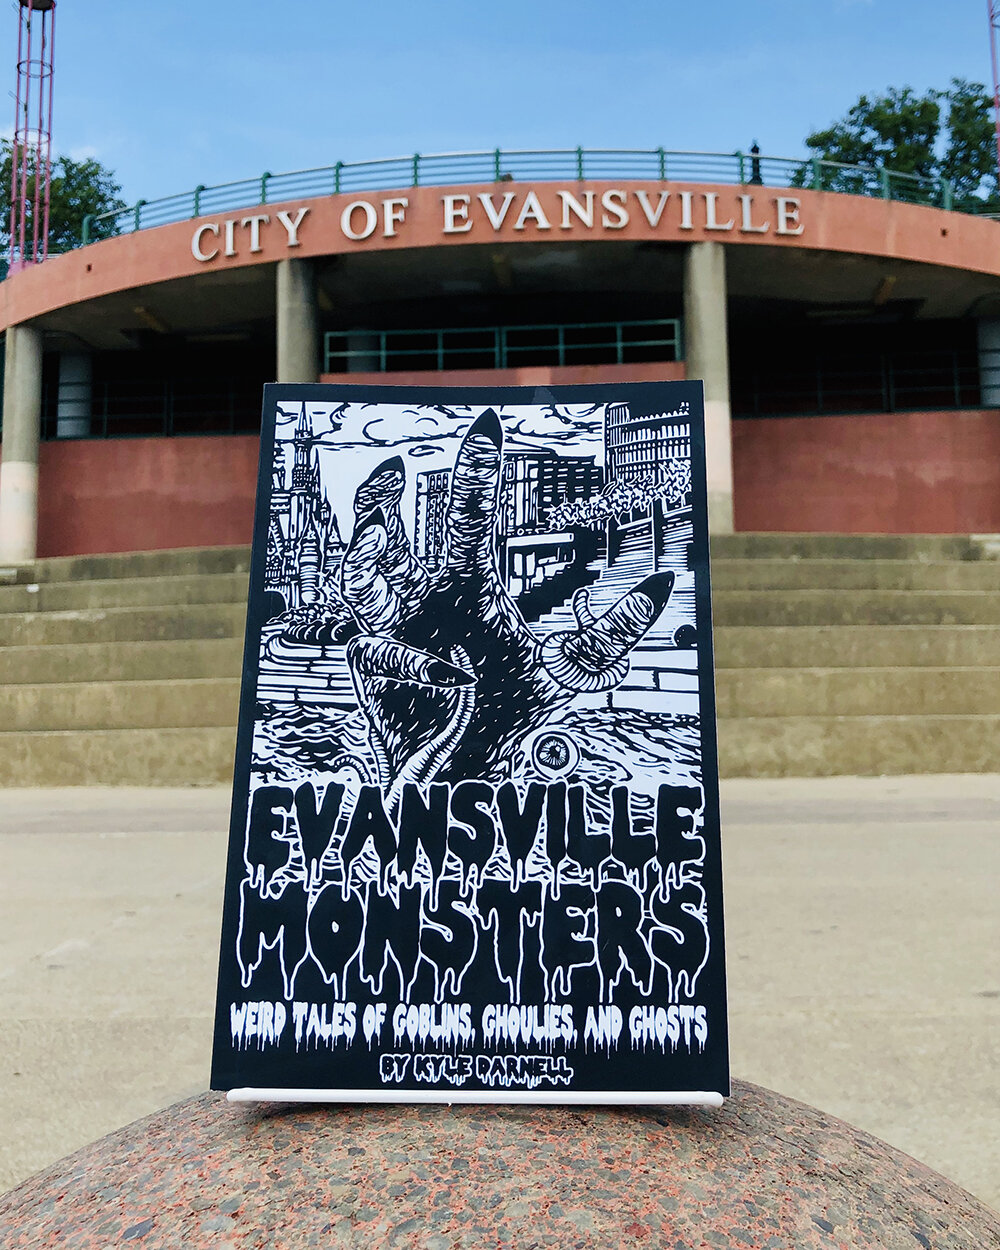 Evansville Monsters: Weird Tales of Goblins, Ghoulies, and Ghosts